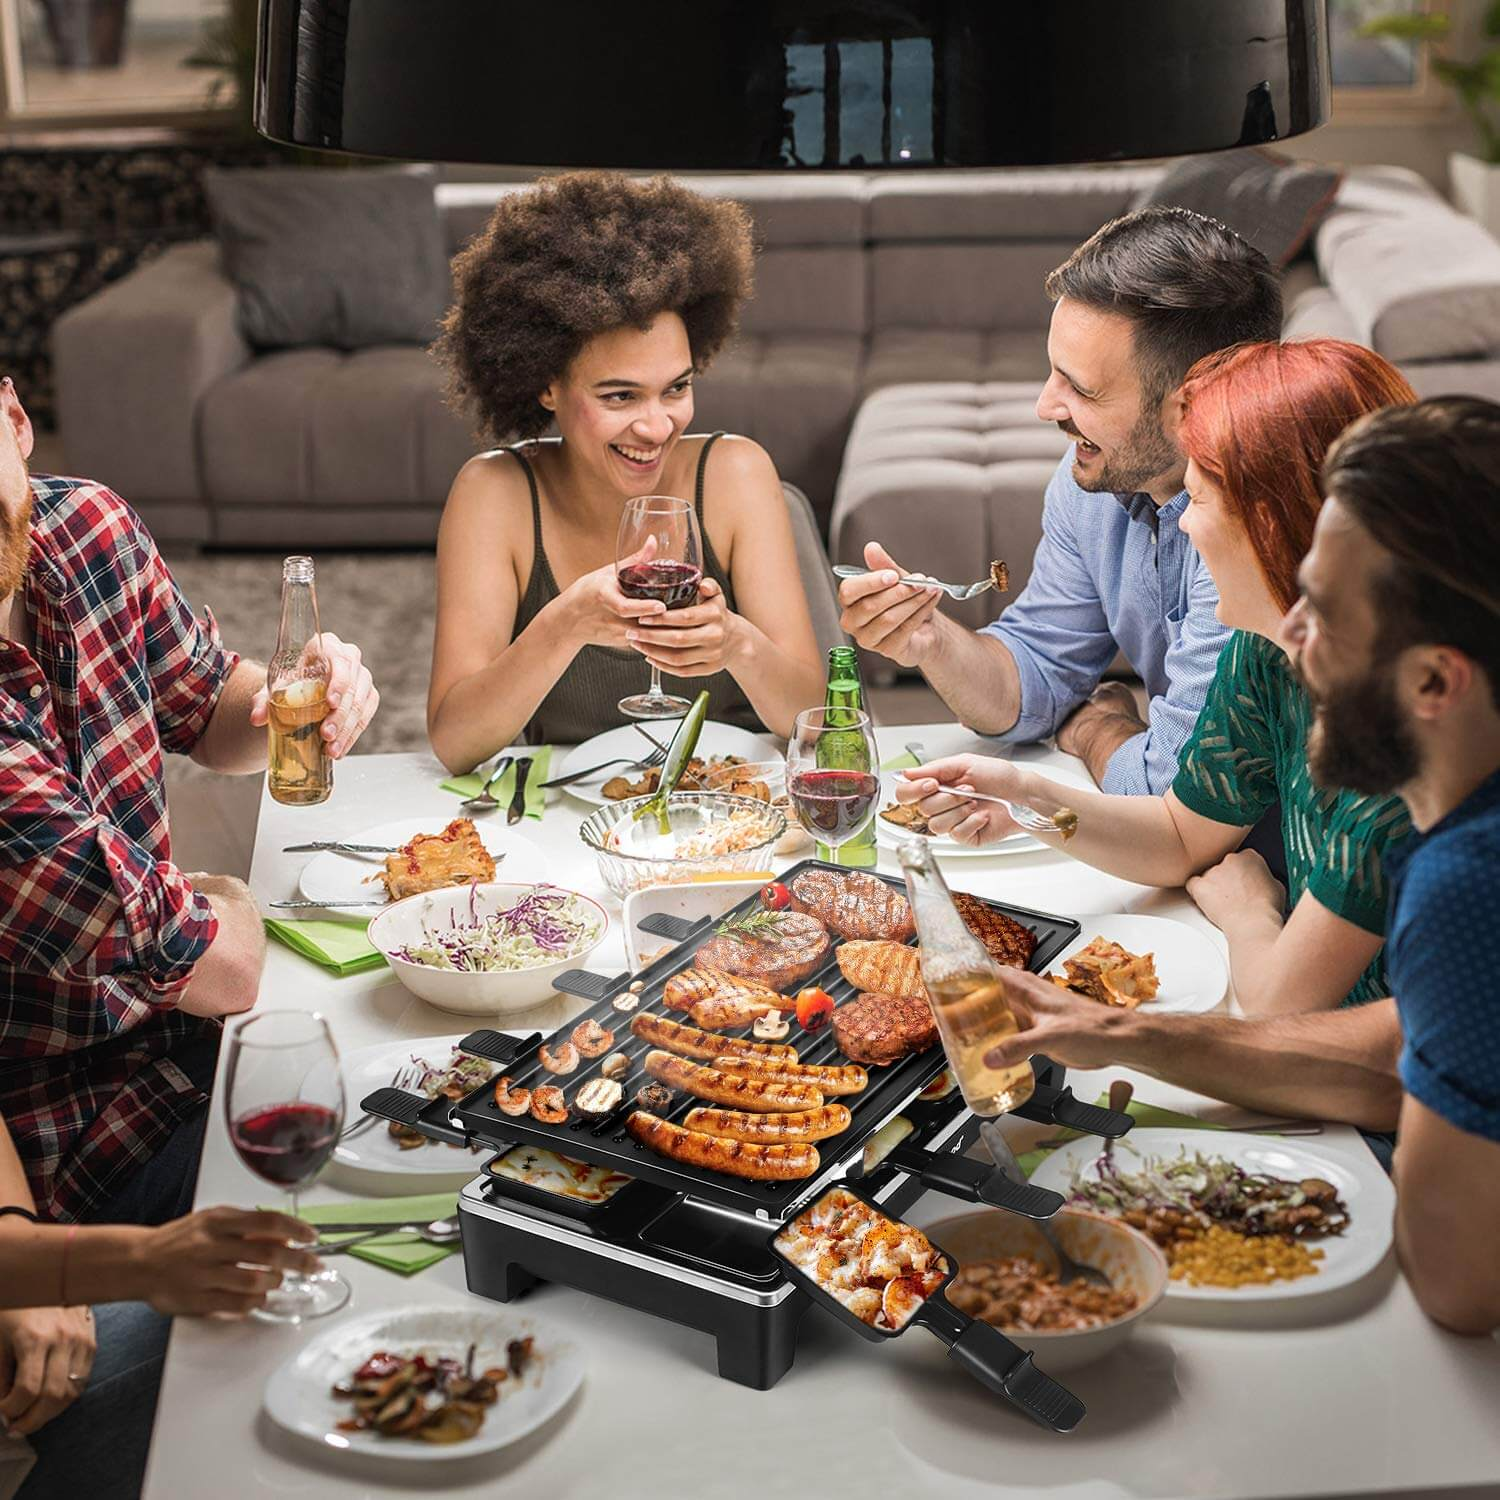 Techwood Raclette Grill / Raclette Party Grill, inside grill, smokeless grill, smokeless power grill, best smokeless indoor grill, best indoor grill